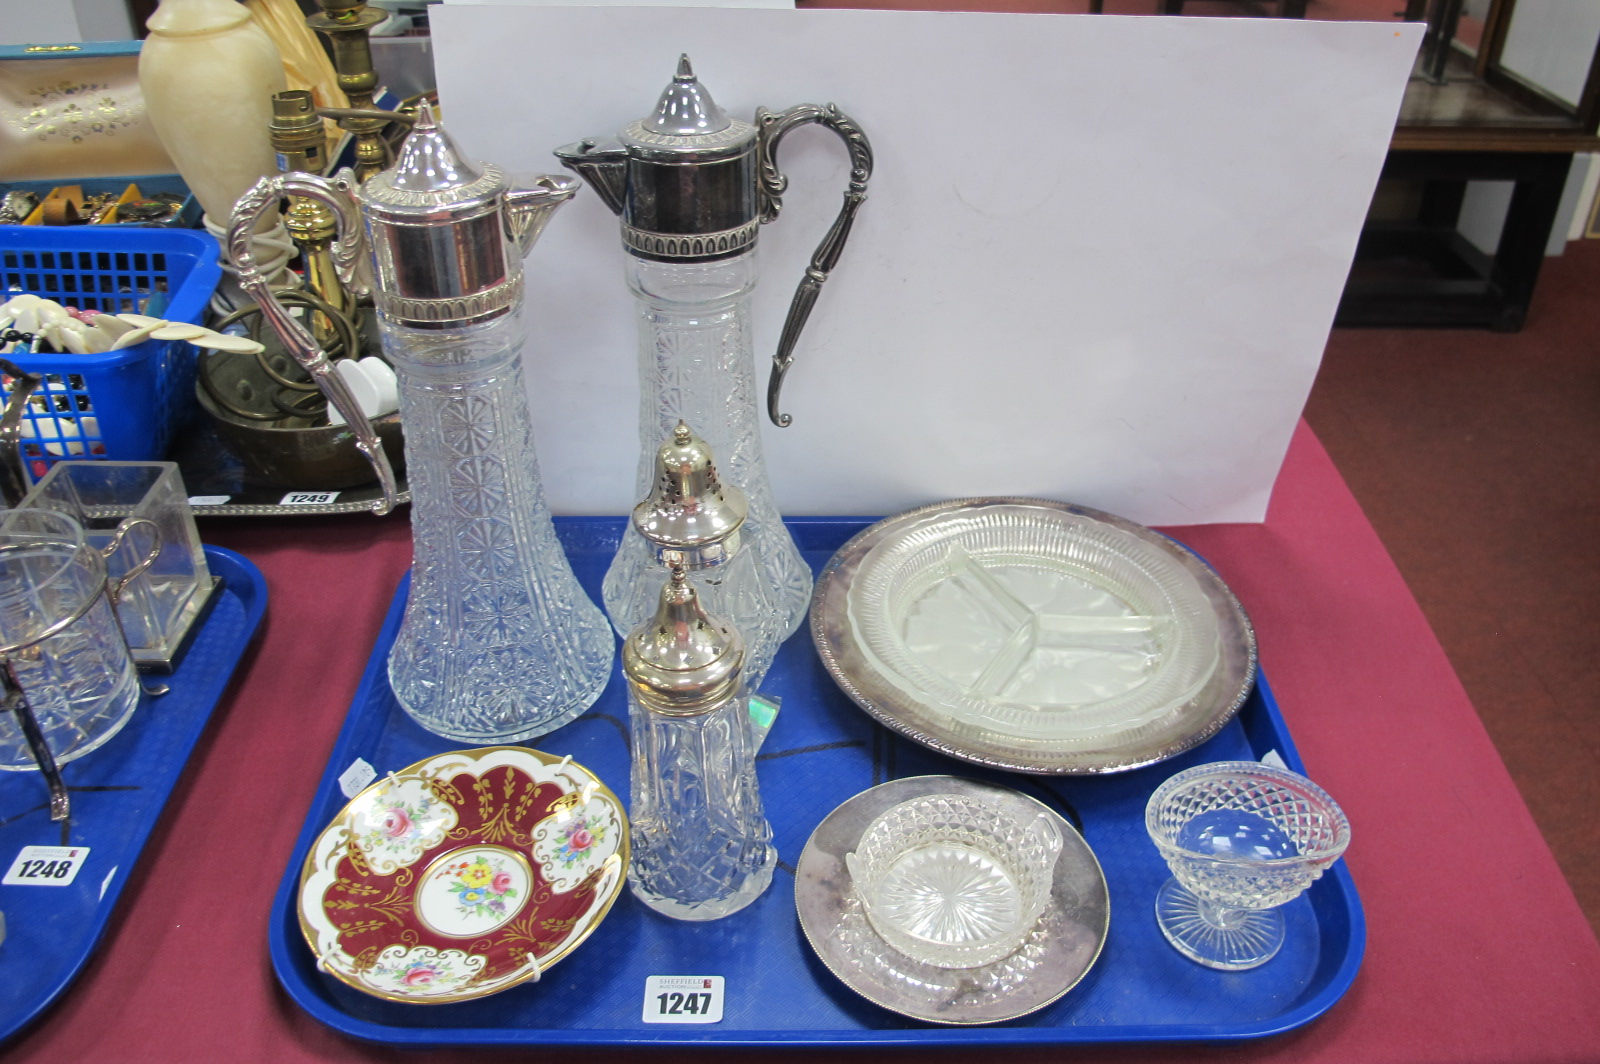 Plated Mounted Pressed Glass Claret Jugs, glass sugar casters, glass dish on plated stand, etc :-